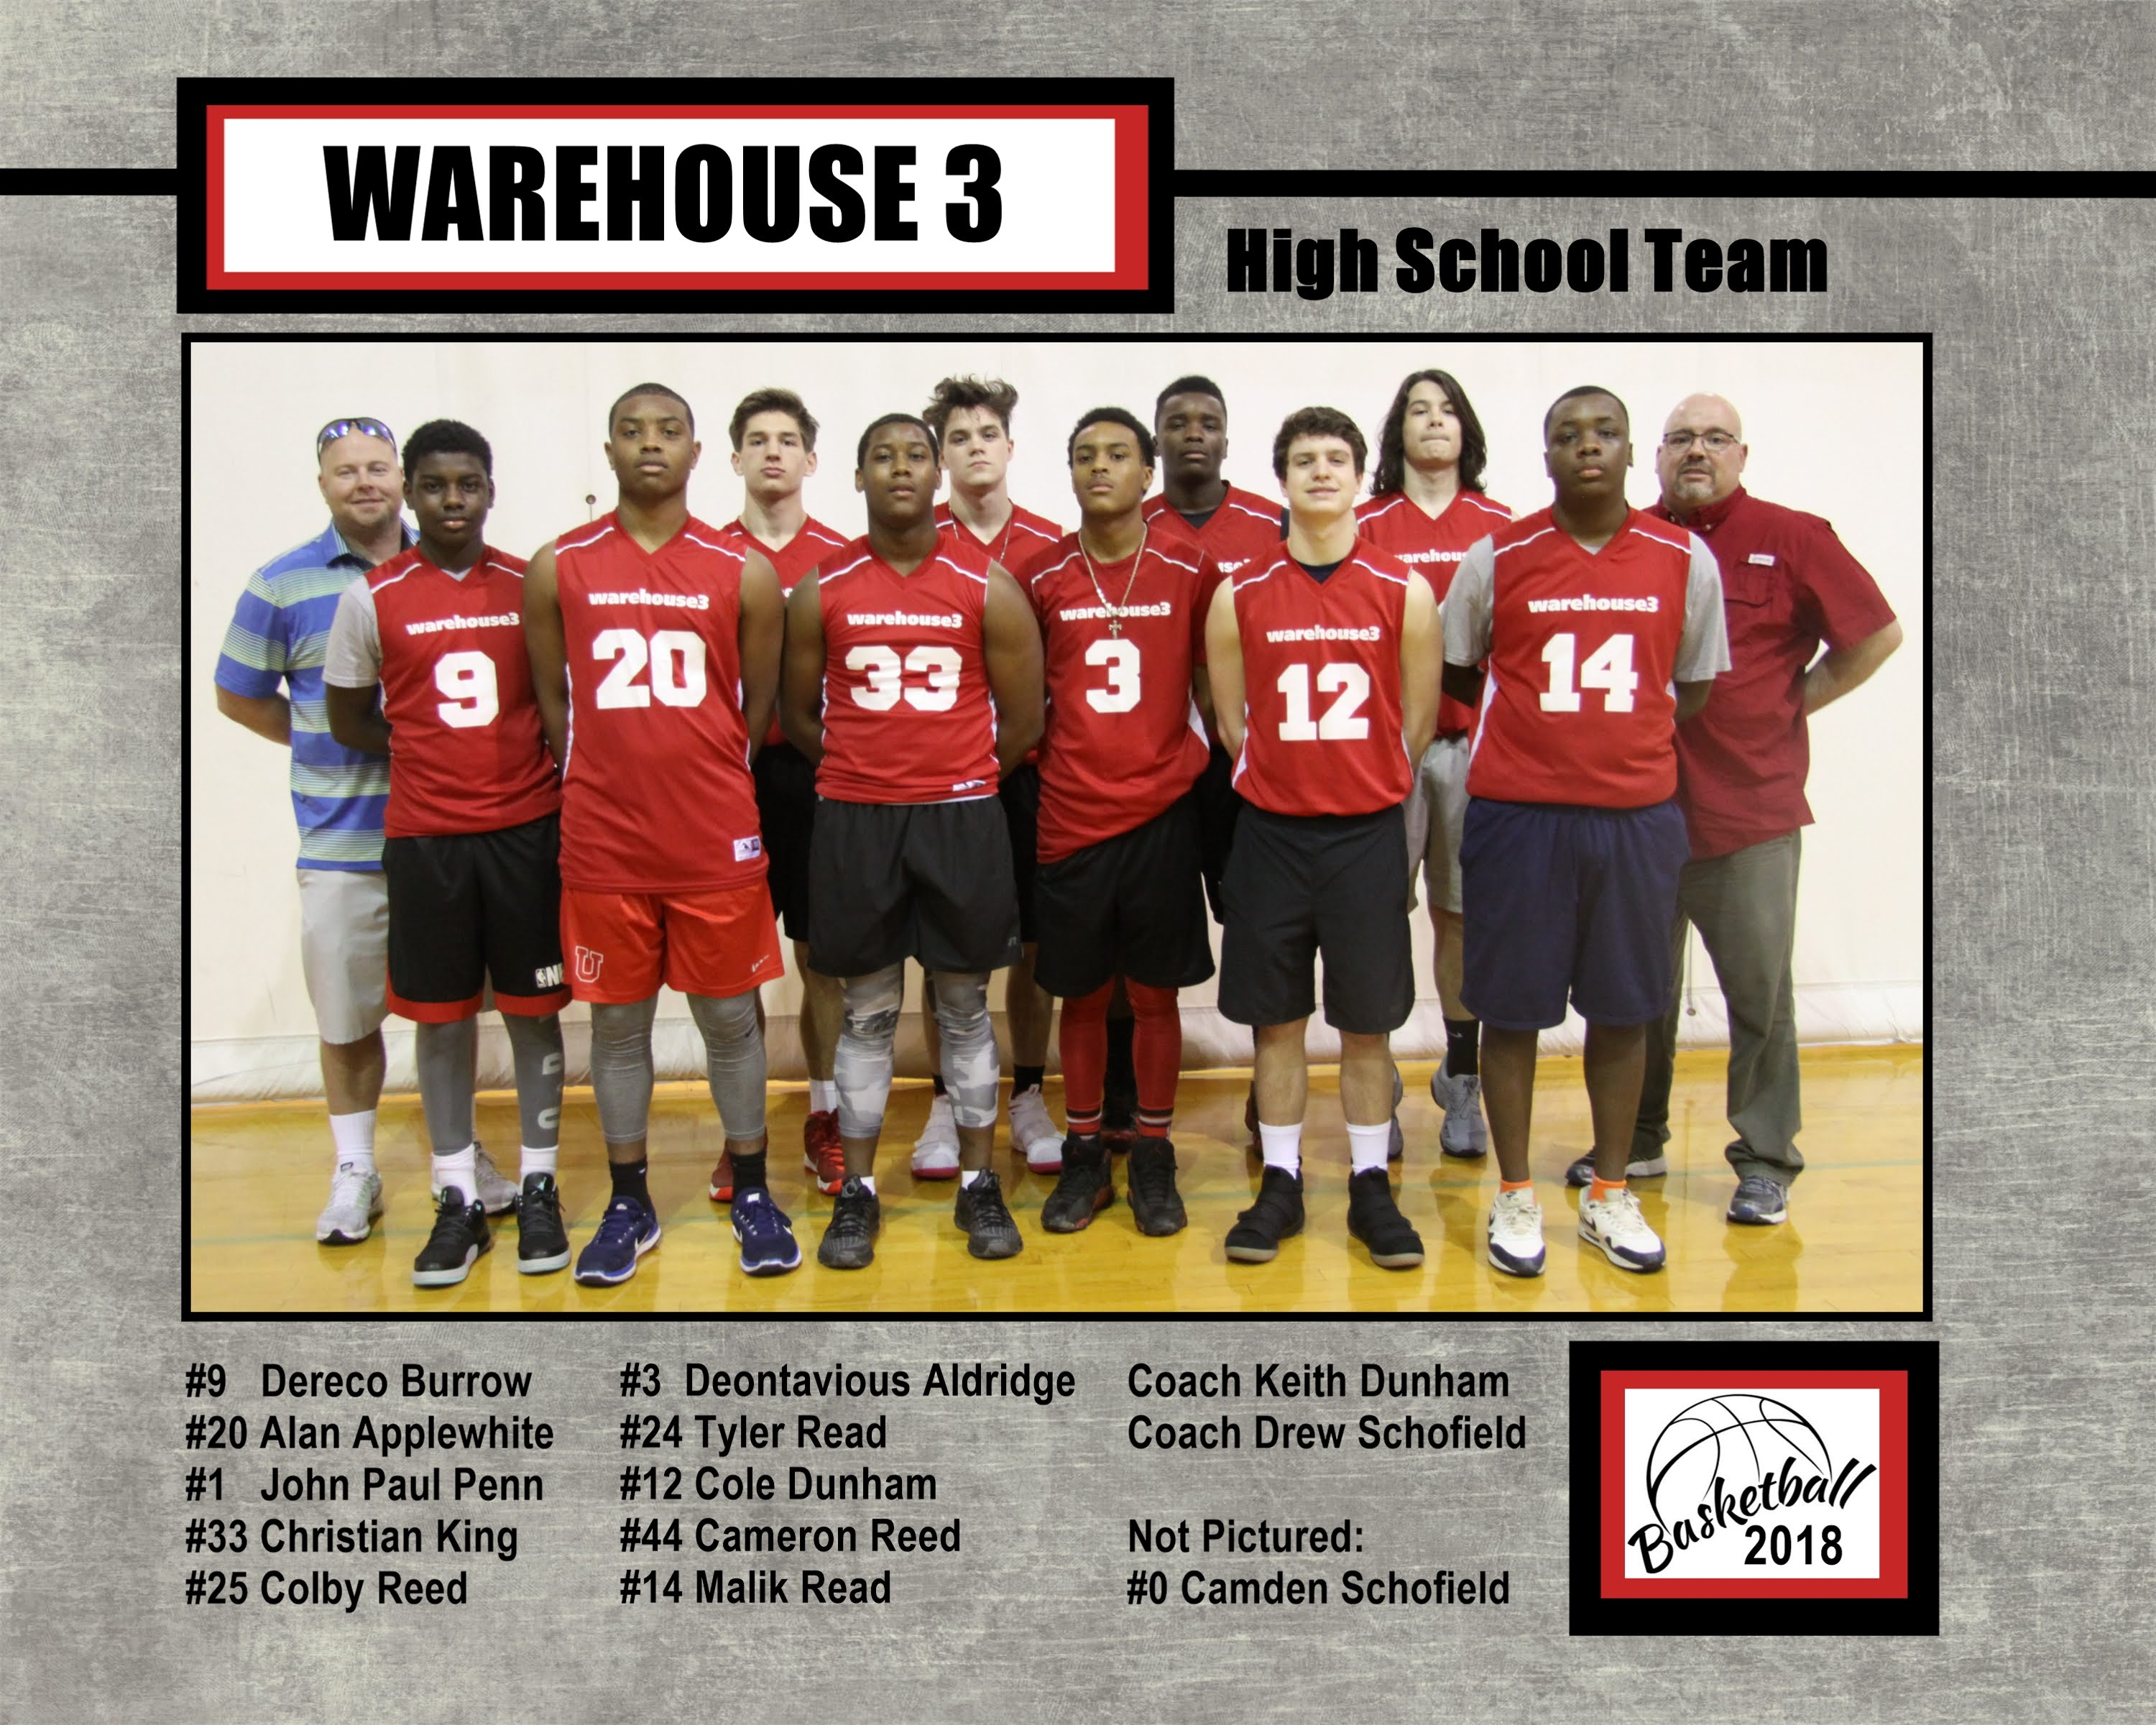 Warehouse 3 HS Team